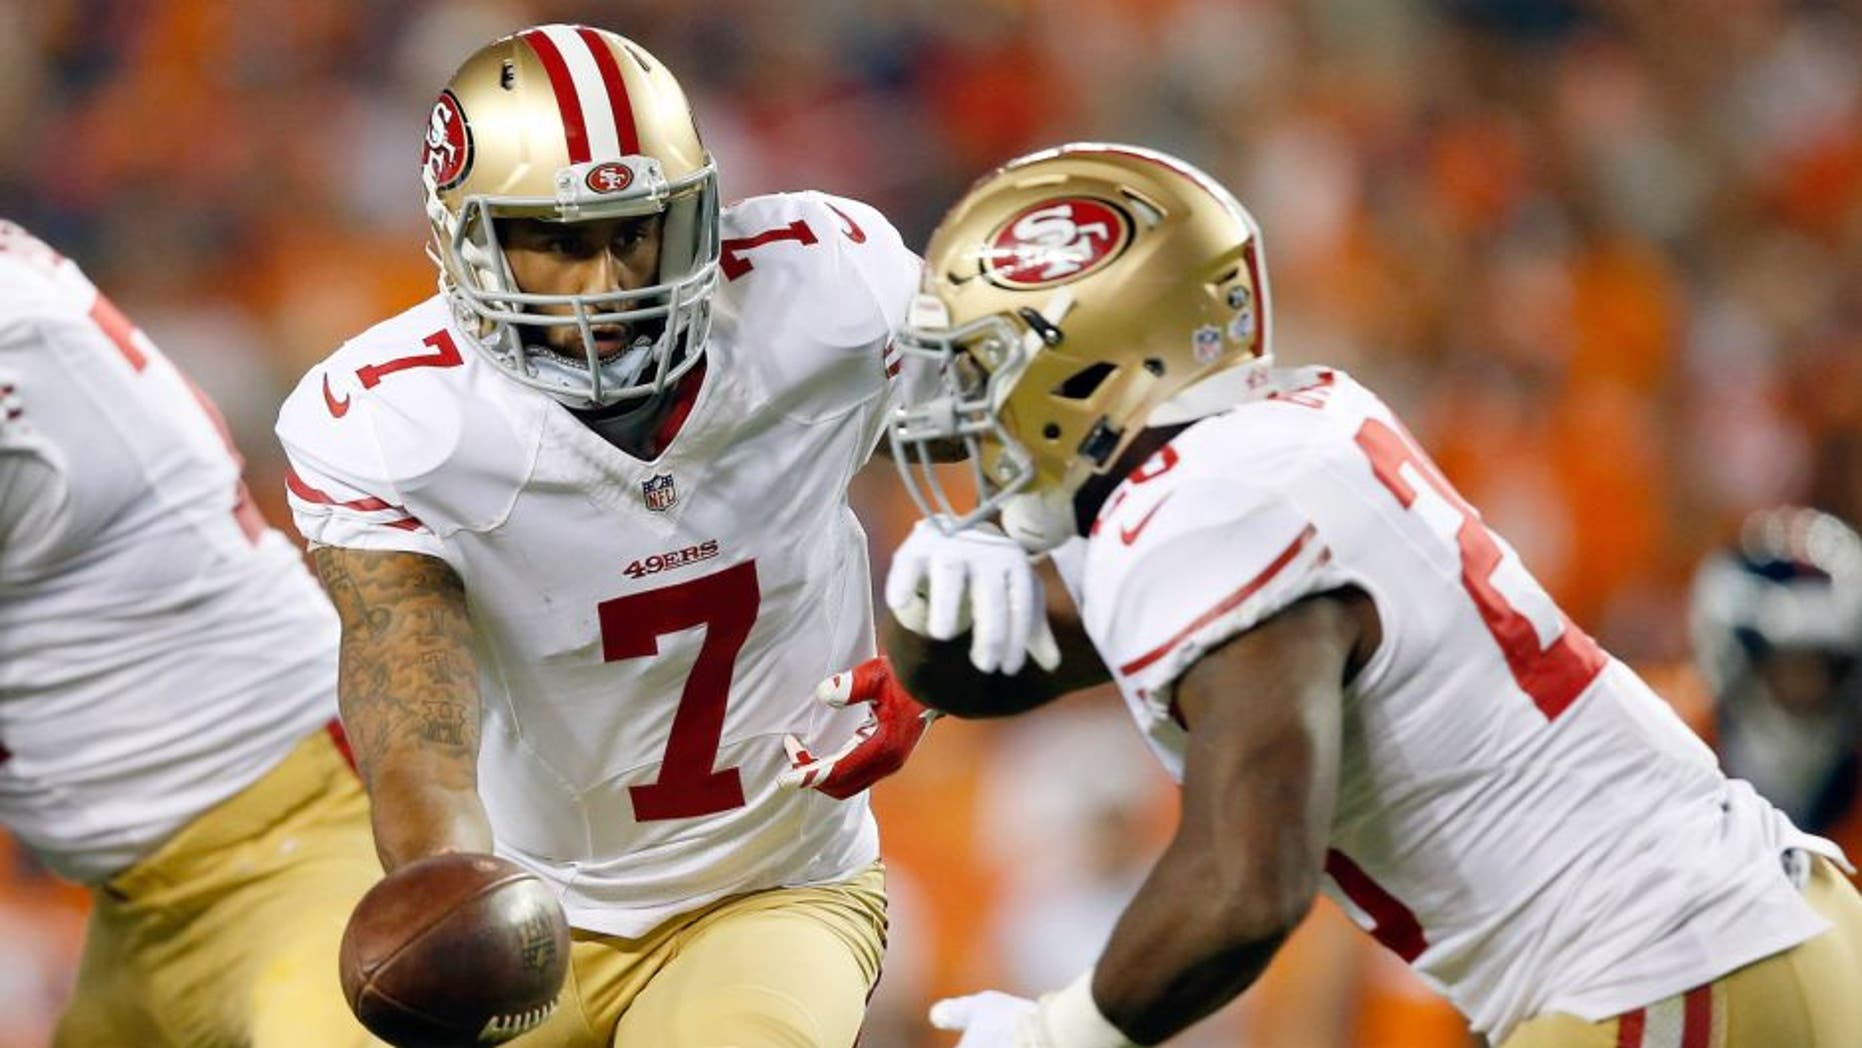 DENVER, CO - AUGUST 29: Quarterback Colin Kaepernick #7 of the San Francisco 49ers hands the ball off to running back Carlos Hyde #28 of the San Francisco 49ers against the Denver Broncos during preseason action at Sports Authority Field at Mile High on August 29, 2015 in Denver, Colorado. (Photo by Doug Pensinger/Getty Images)